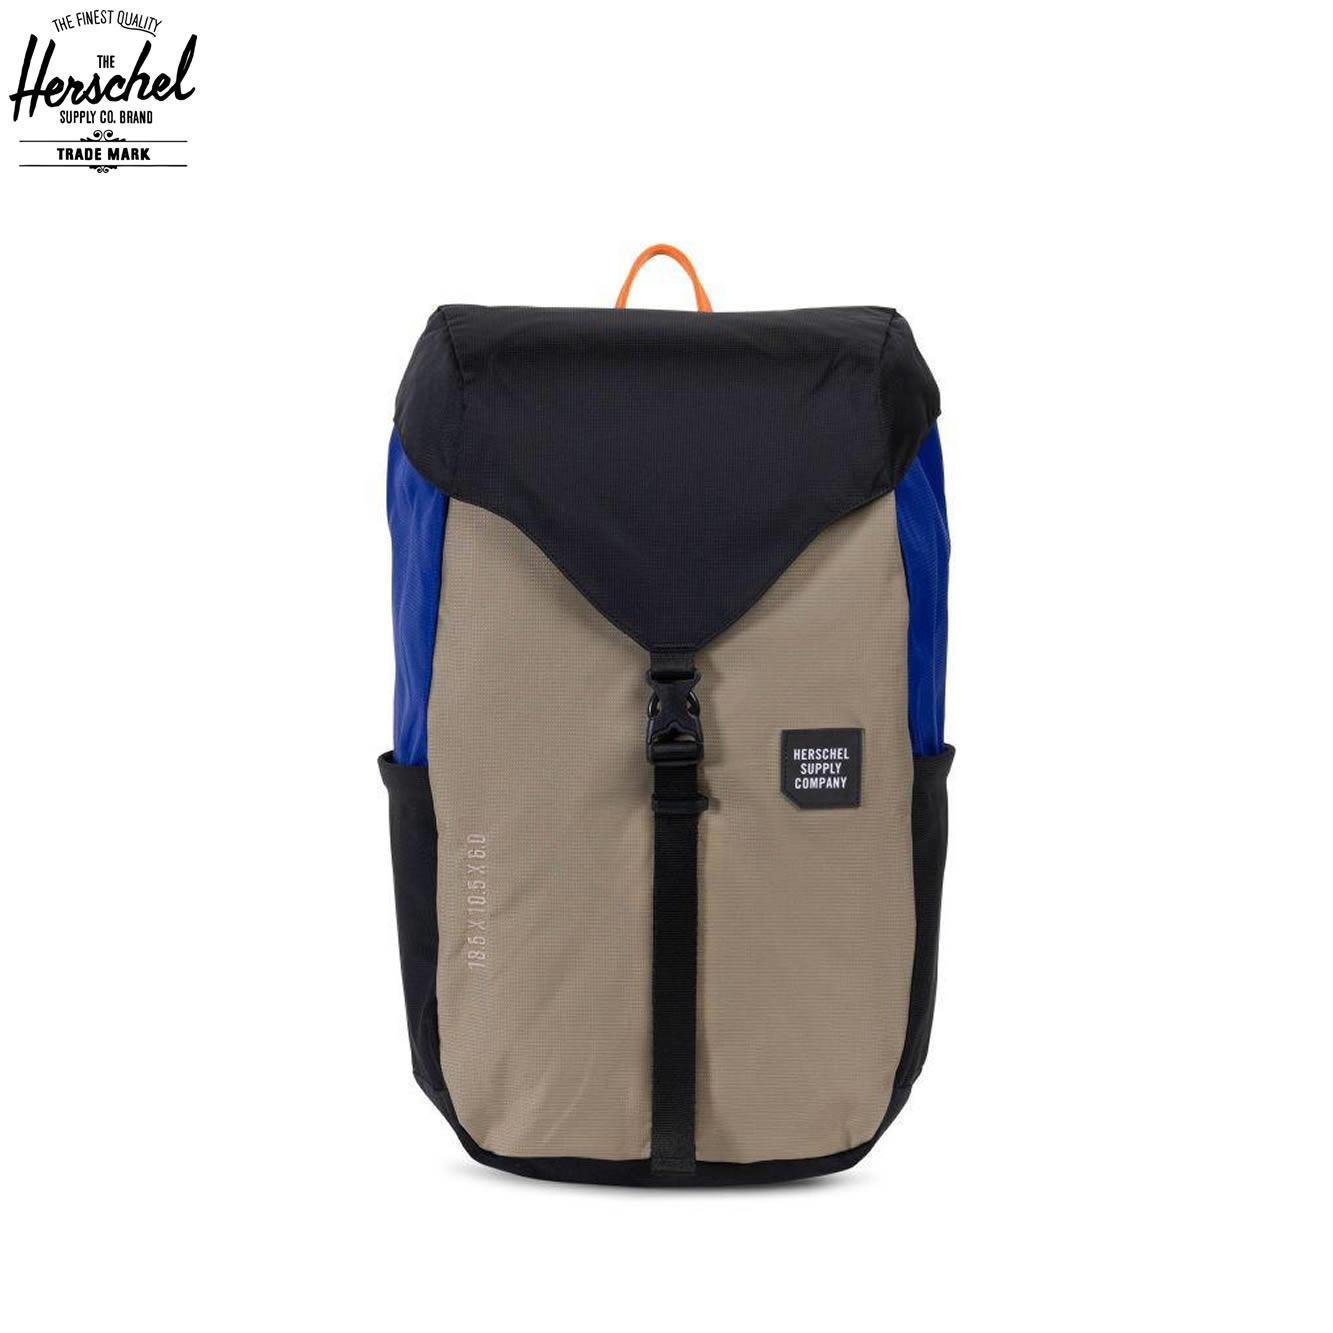 a95925f14 [Herschel Supply Co.] Trail Barlow Medium Backpack rain cover  water-resistant coating